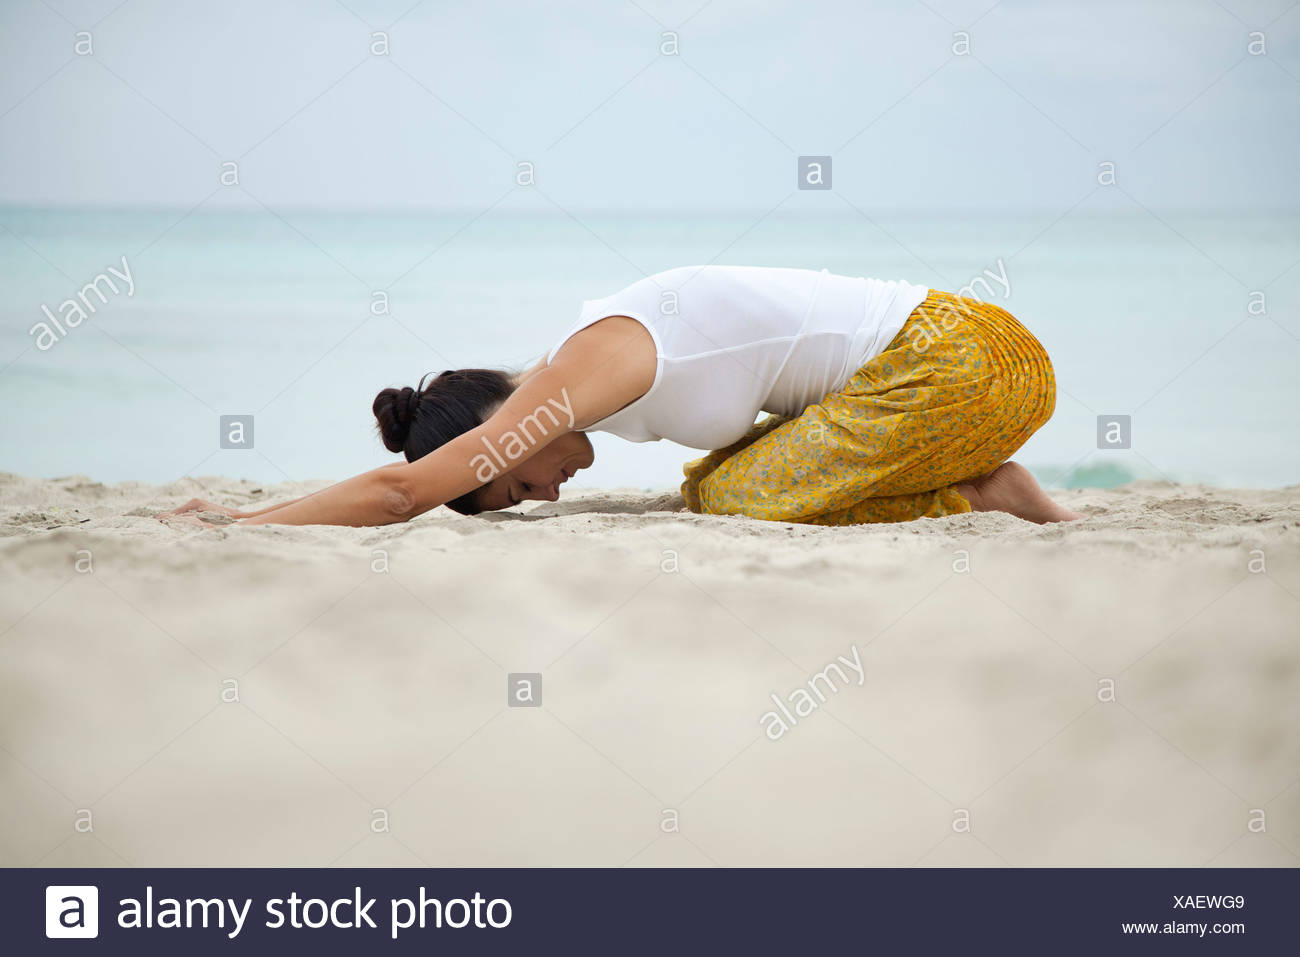 Woman in childs pose on beach, side view - Stock Image